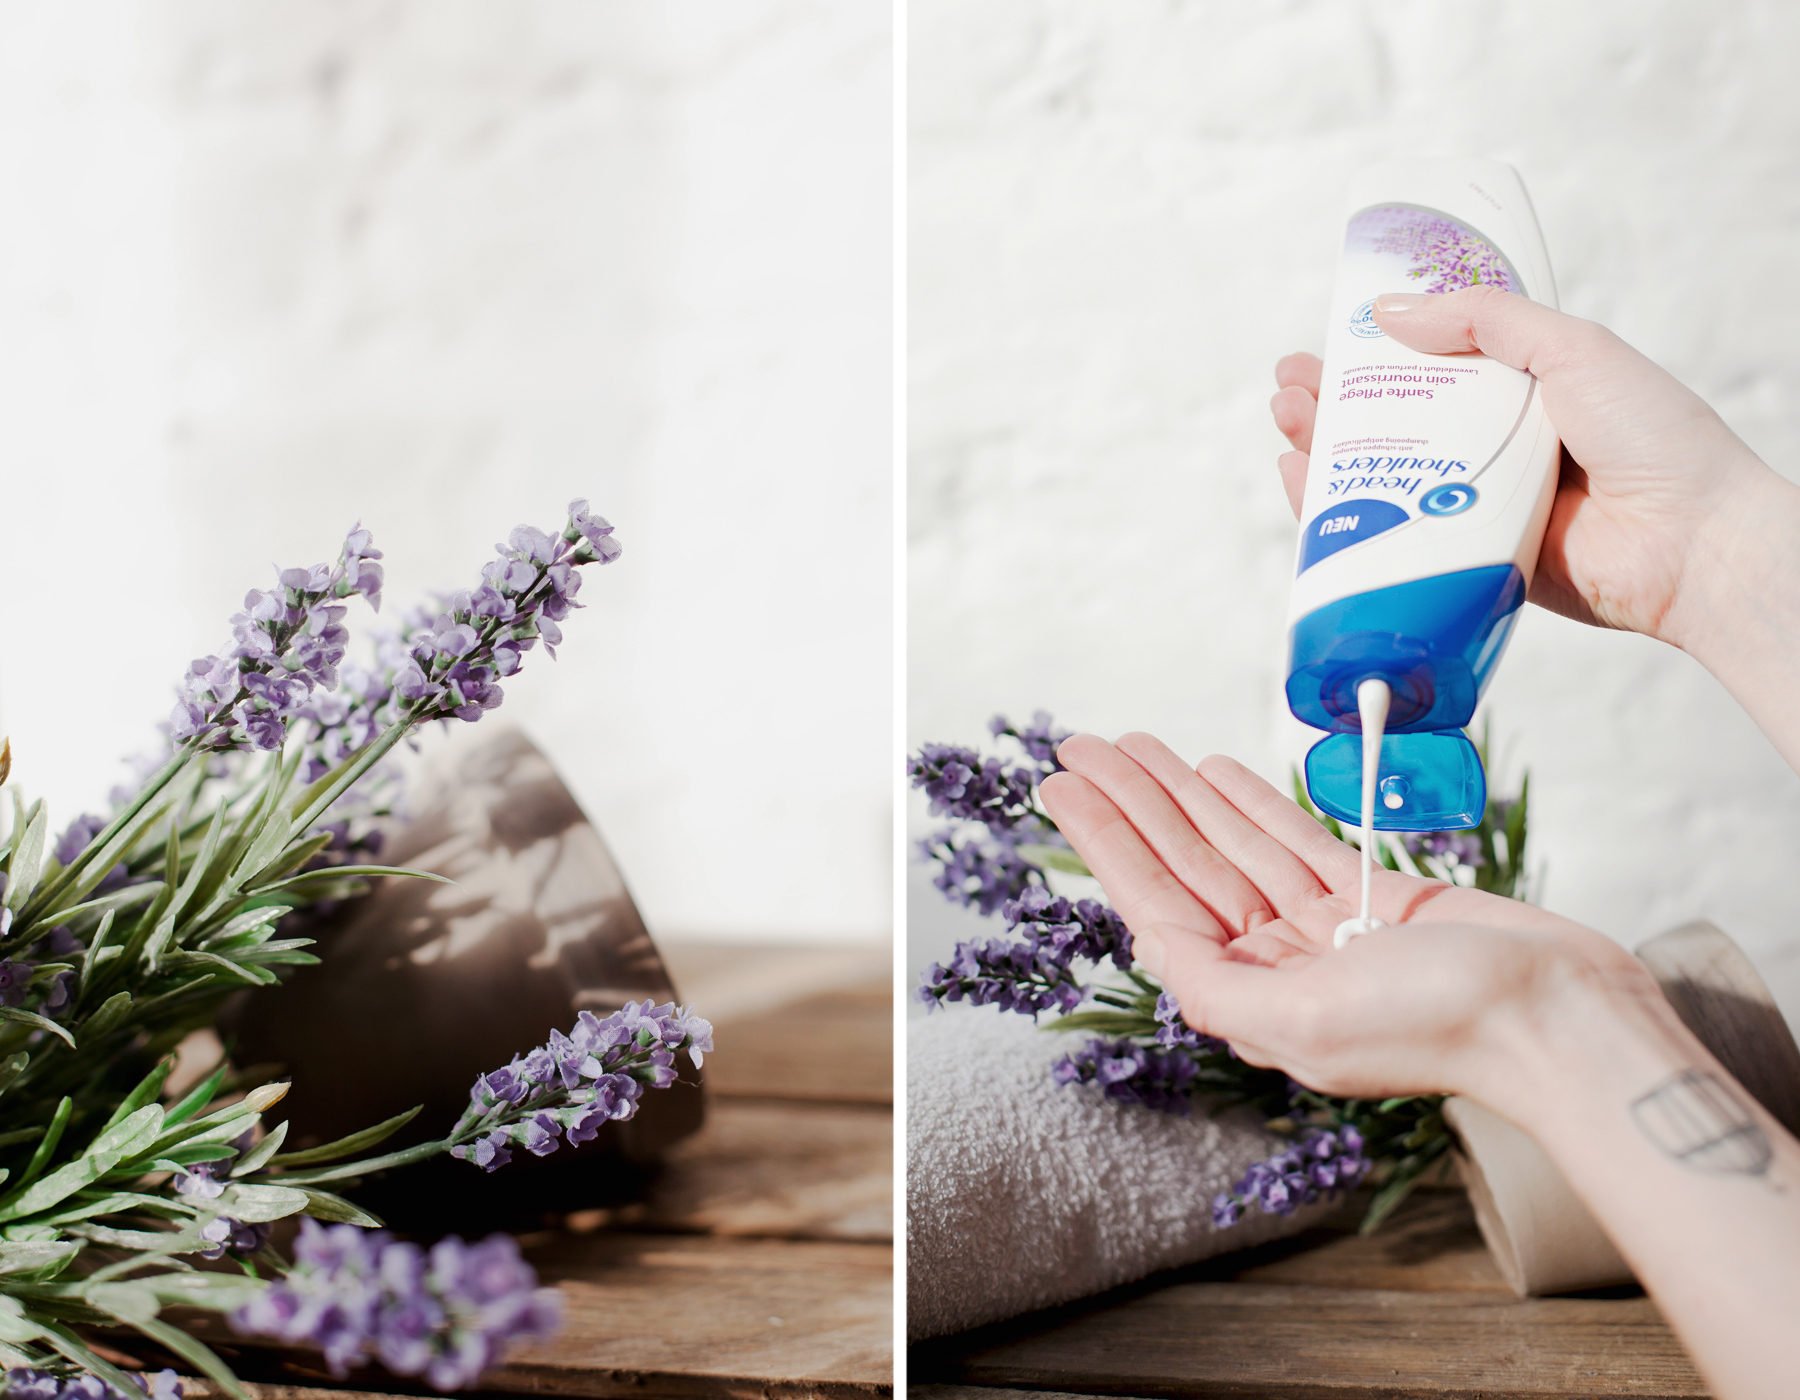 head & shoulders sanfte pflege lavendelduft lavendel lavender scent soin doux beauty beautyblogger product review haircare hair care antischuppen shampoo cats & dogs blog wie hund und katze ricarda schernus blogger düsseldorf berlin 6